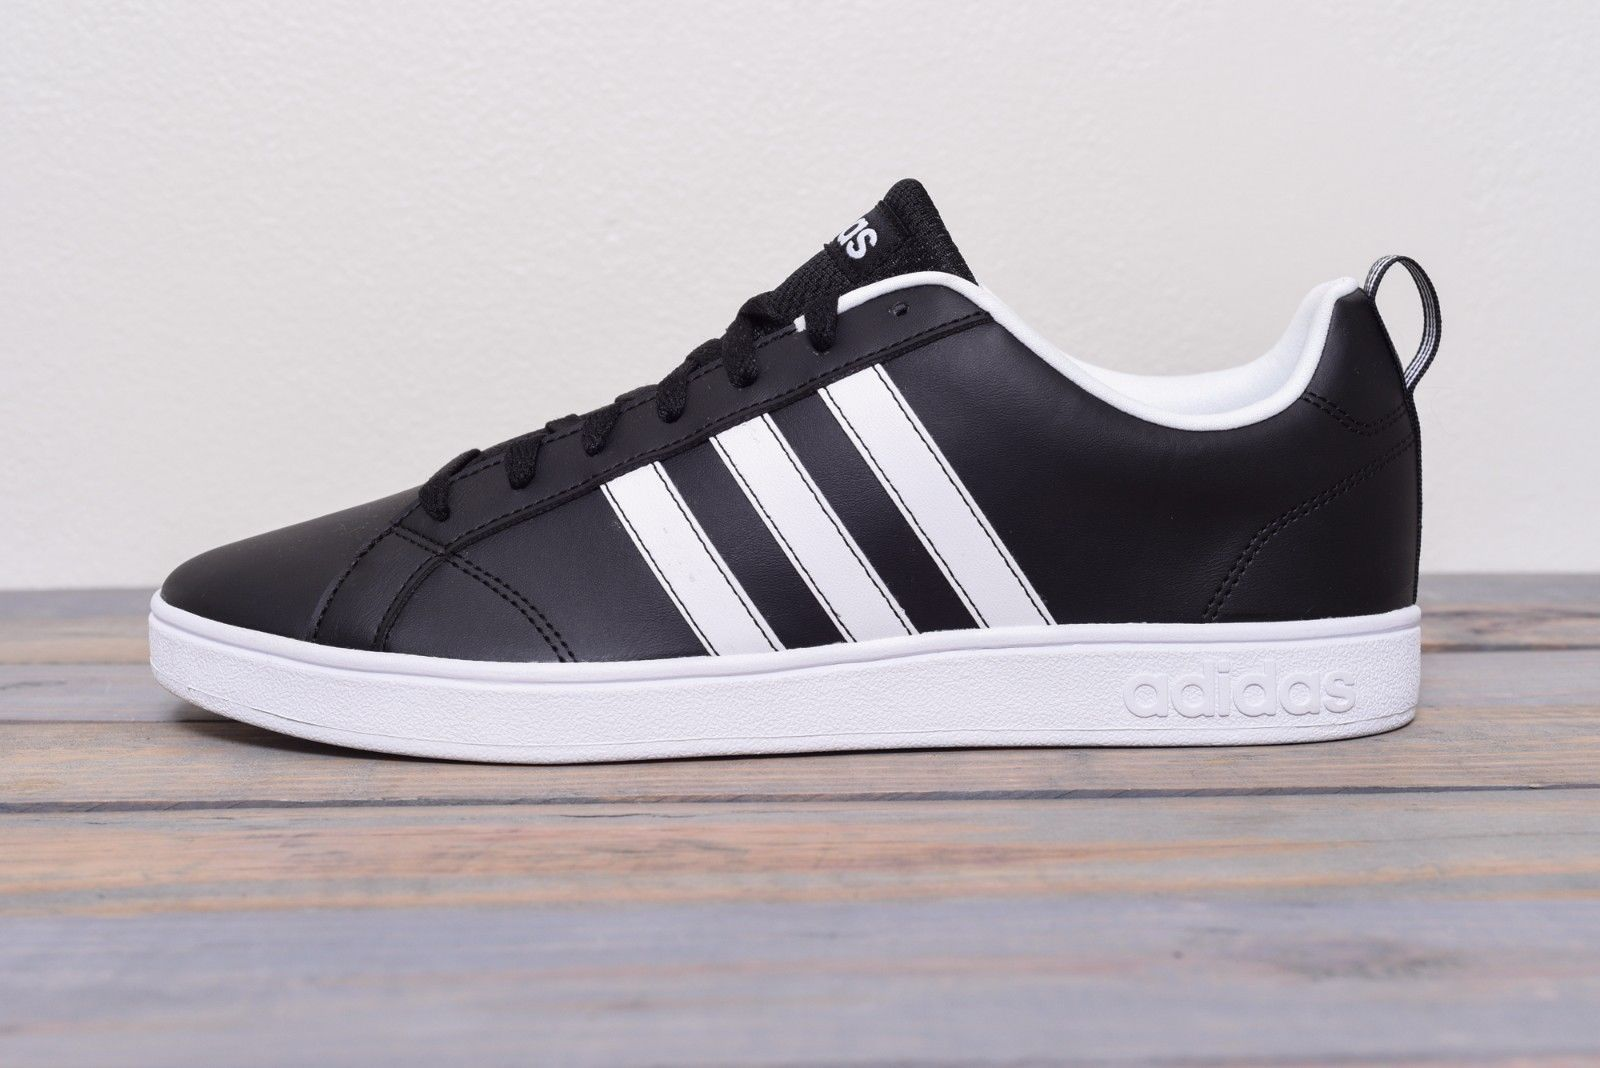 new style fa3be 94094 Adidas VS ADVANTAGE F99254 Black and White Sneakers Size 10 New Mint  Condition